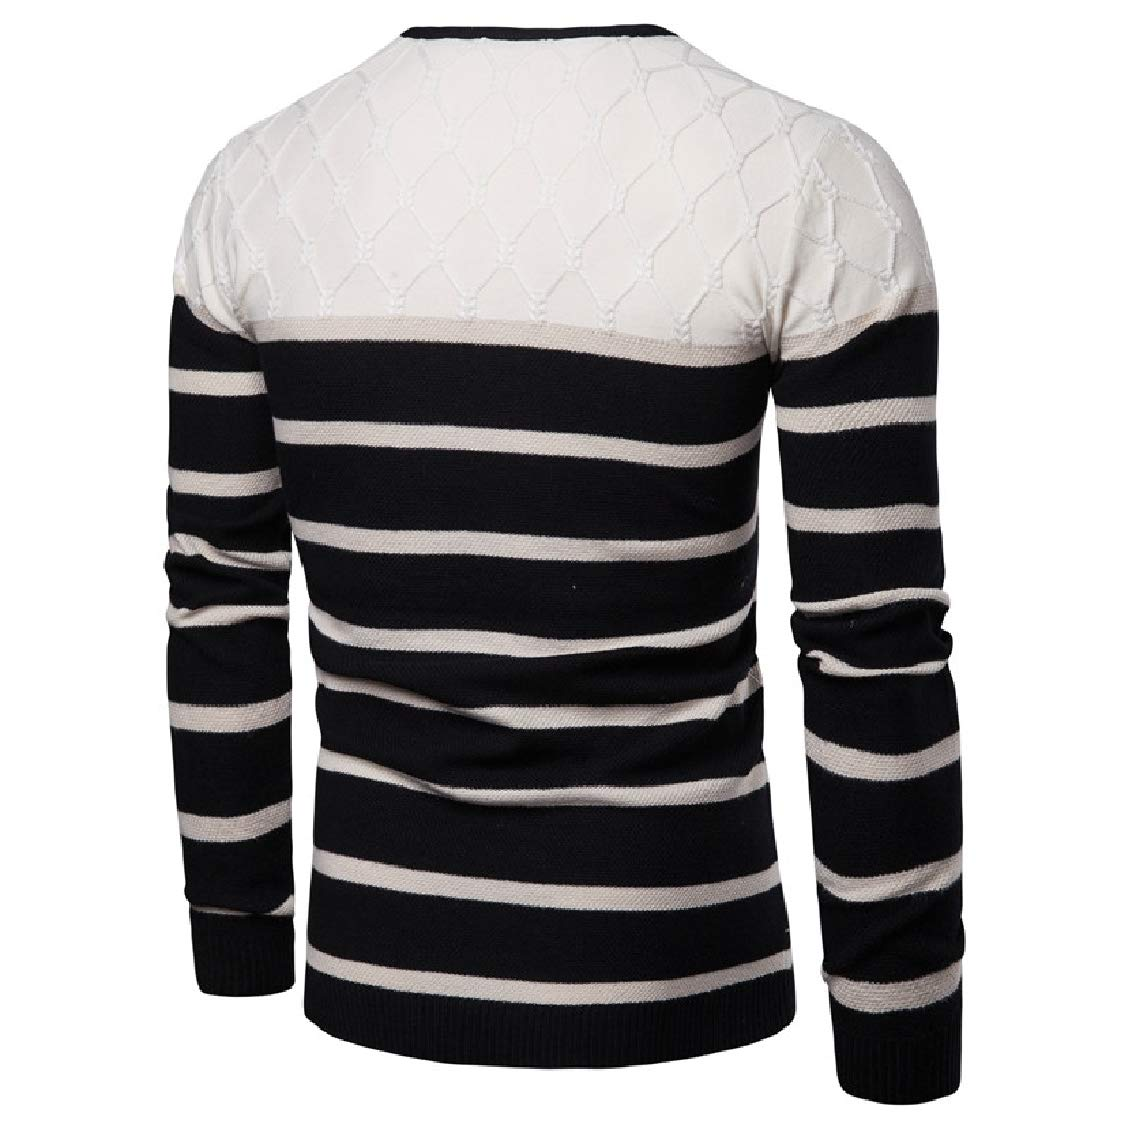 Fieer Mens Pullover Stretch Plus Size Knit Top Pullover Sweater